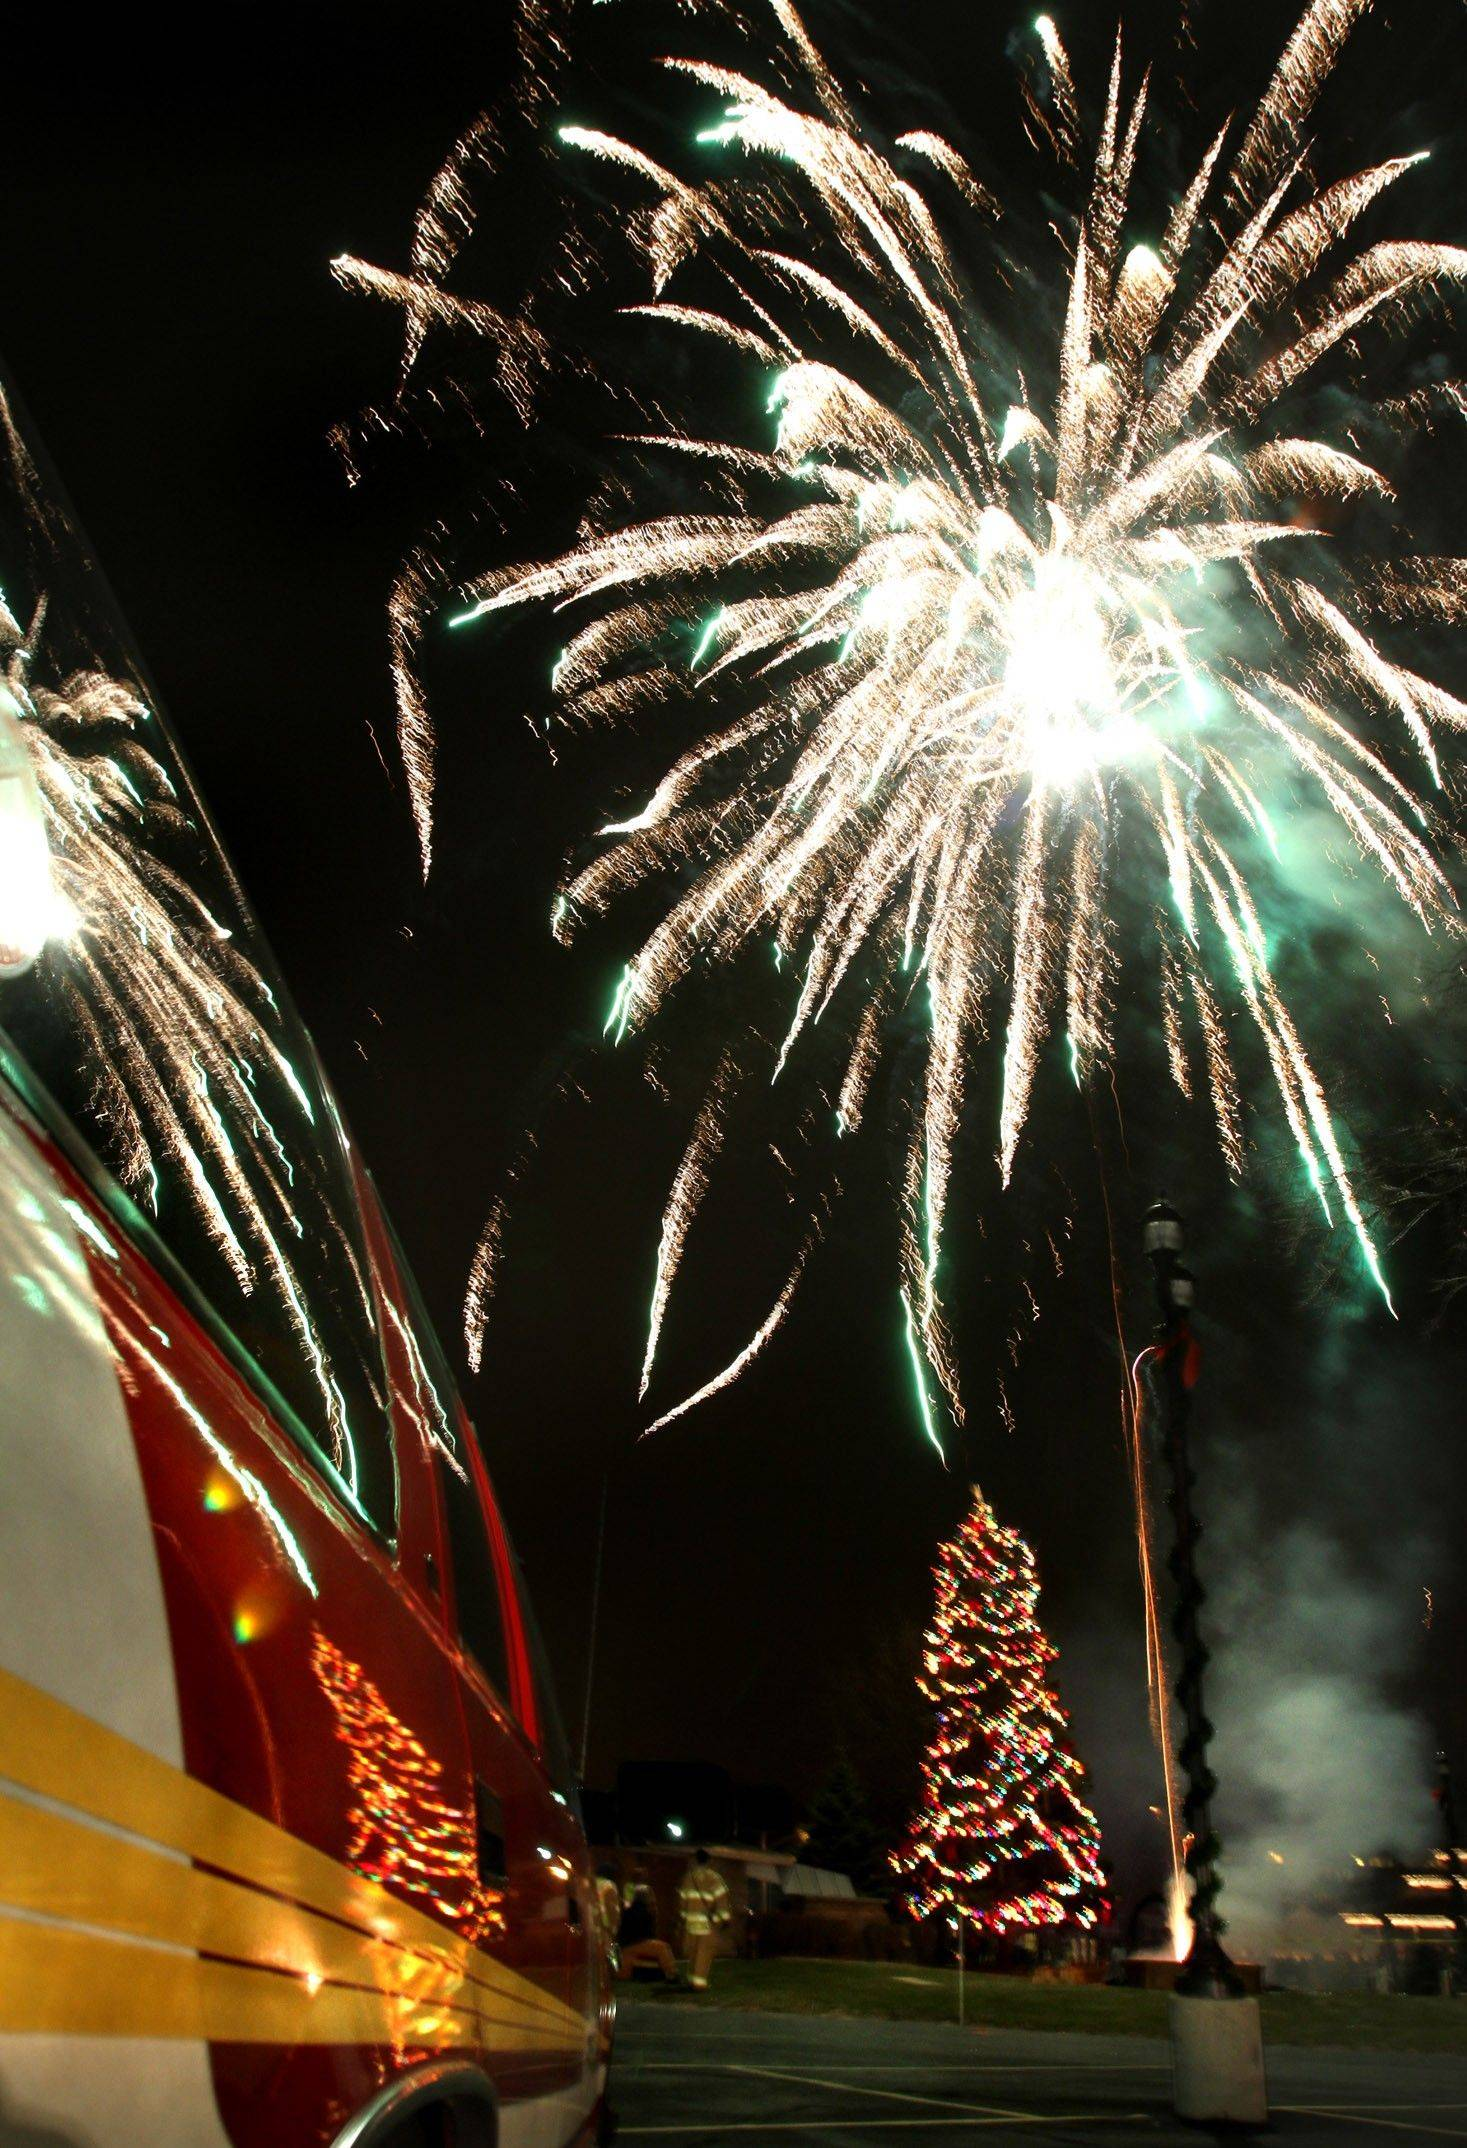 Mundelein's annual tree lighting ceremony came with fireworks in 2010.